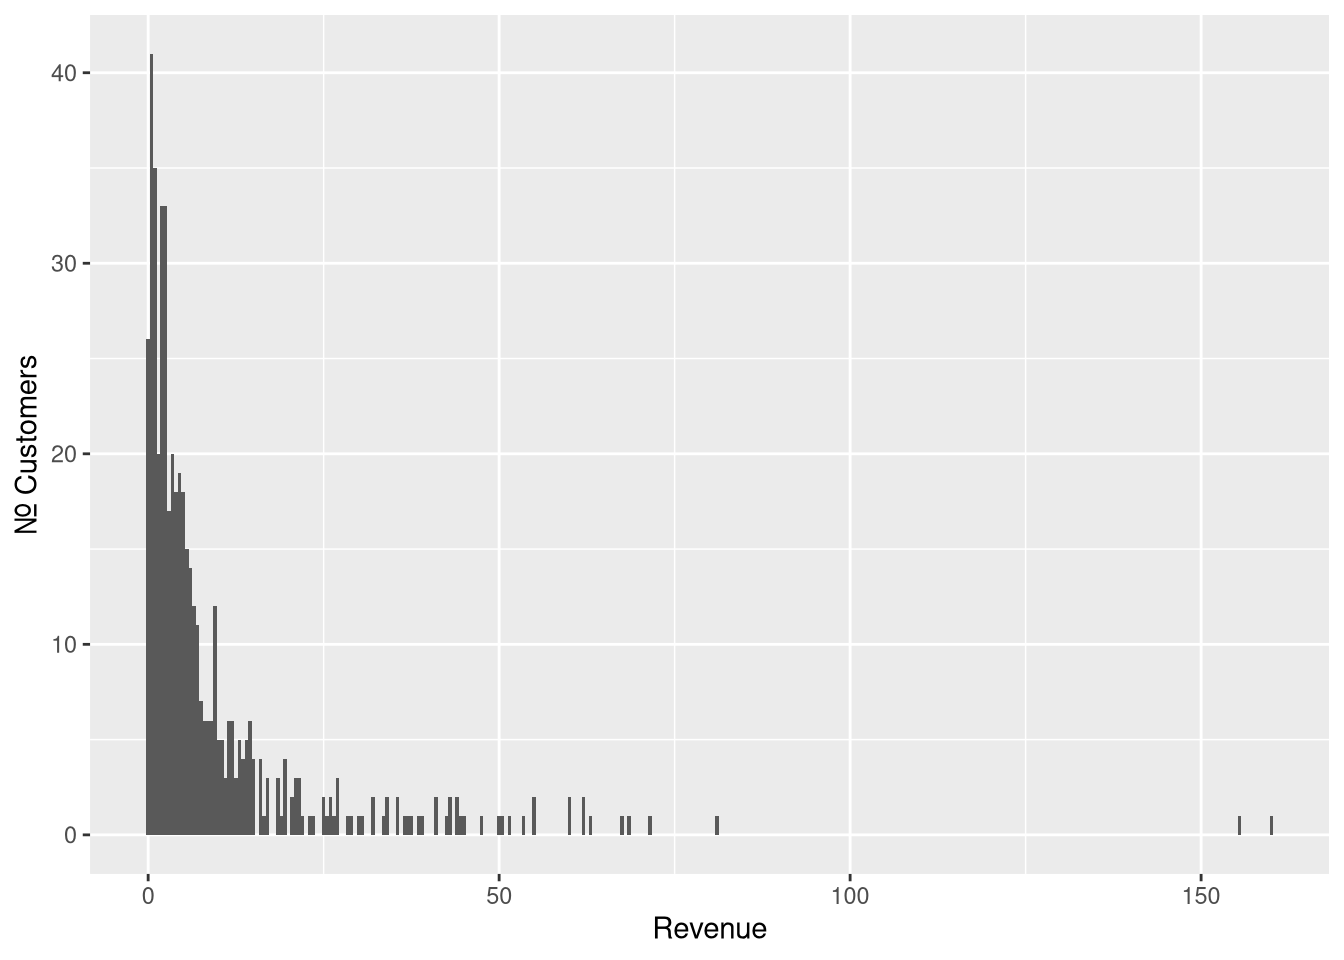 Samples from Pareto Type II distribution with scale=10, shape=2 and location=0